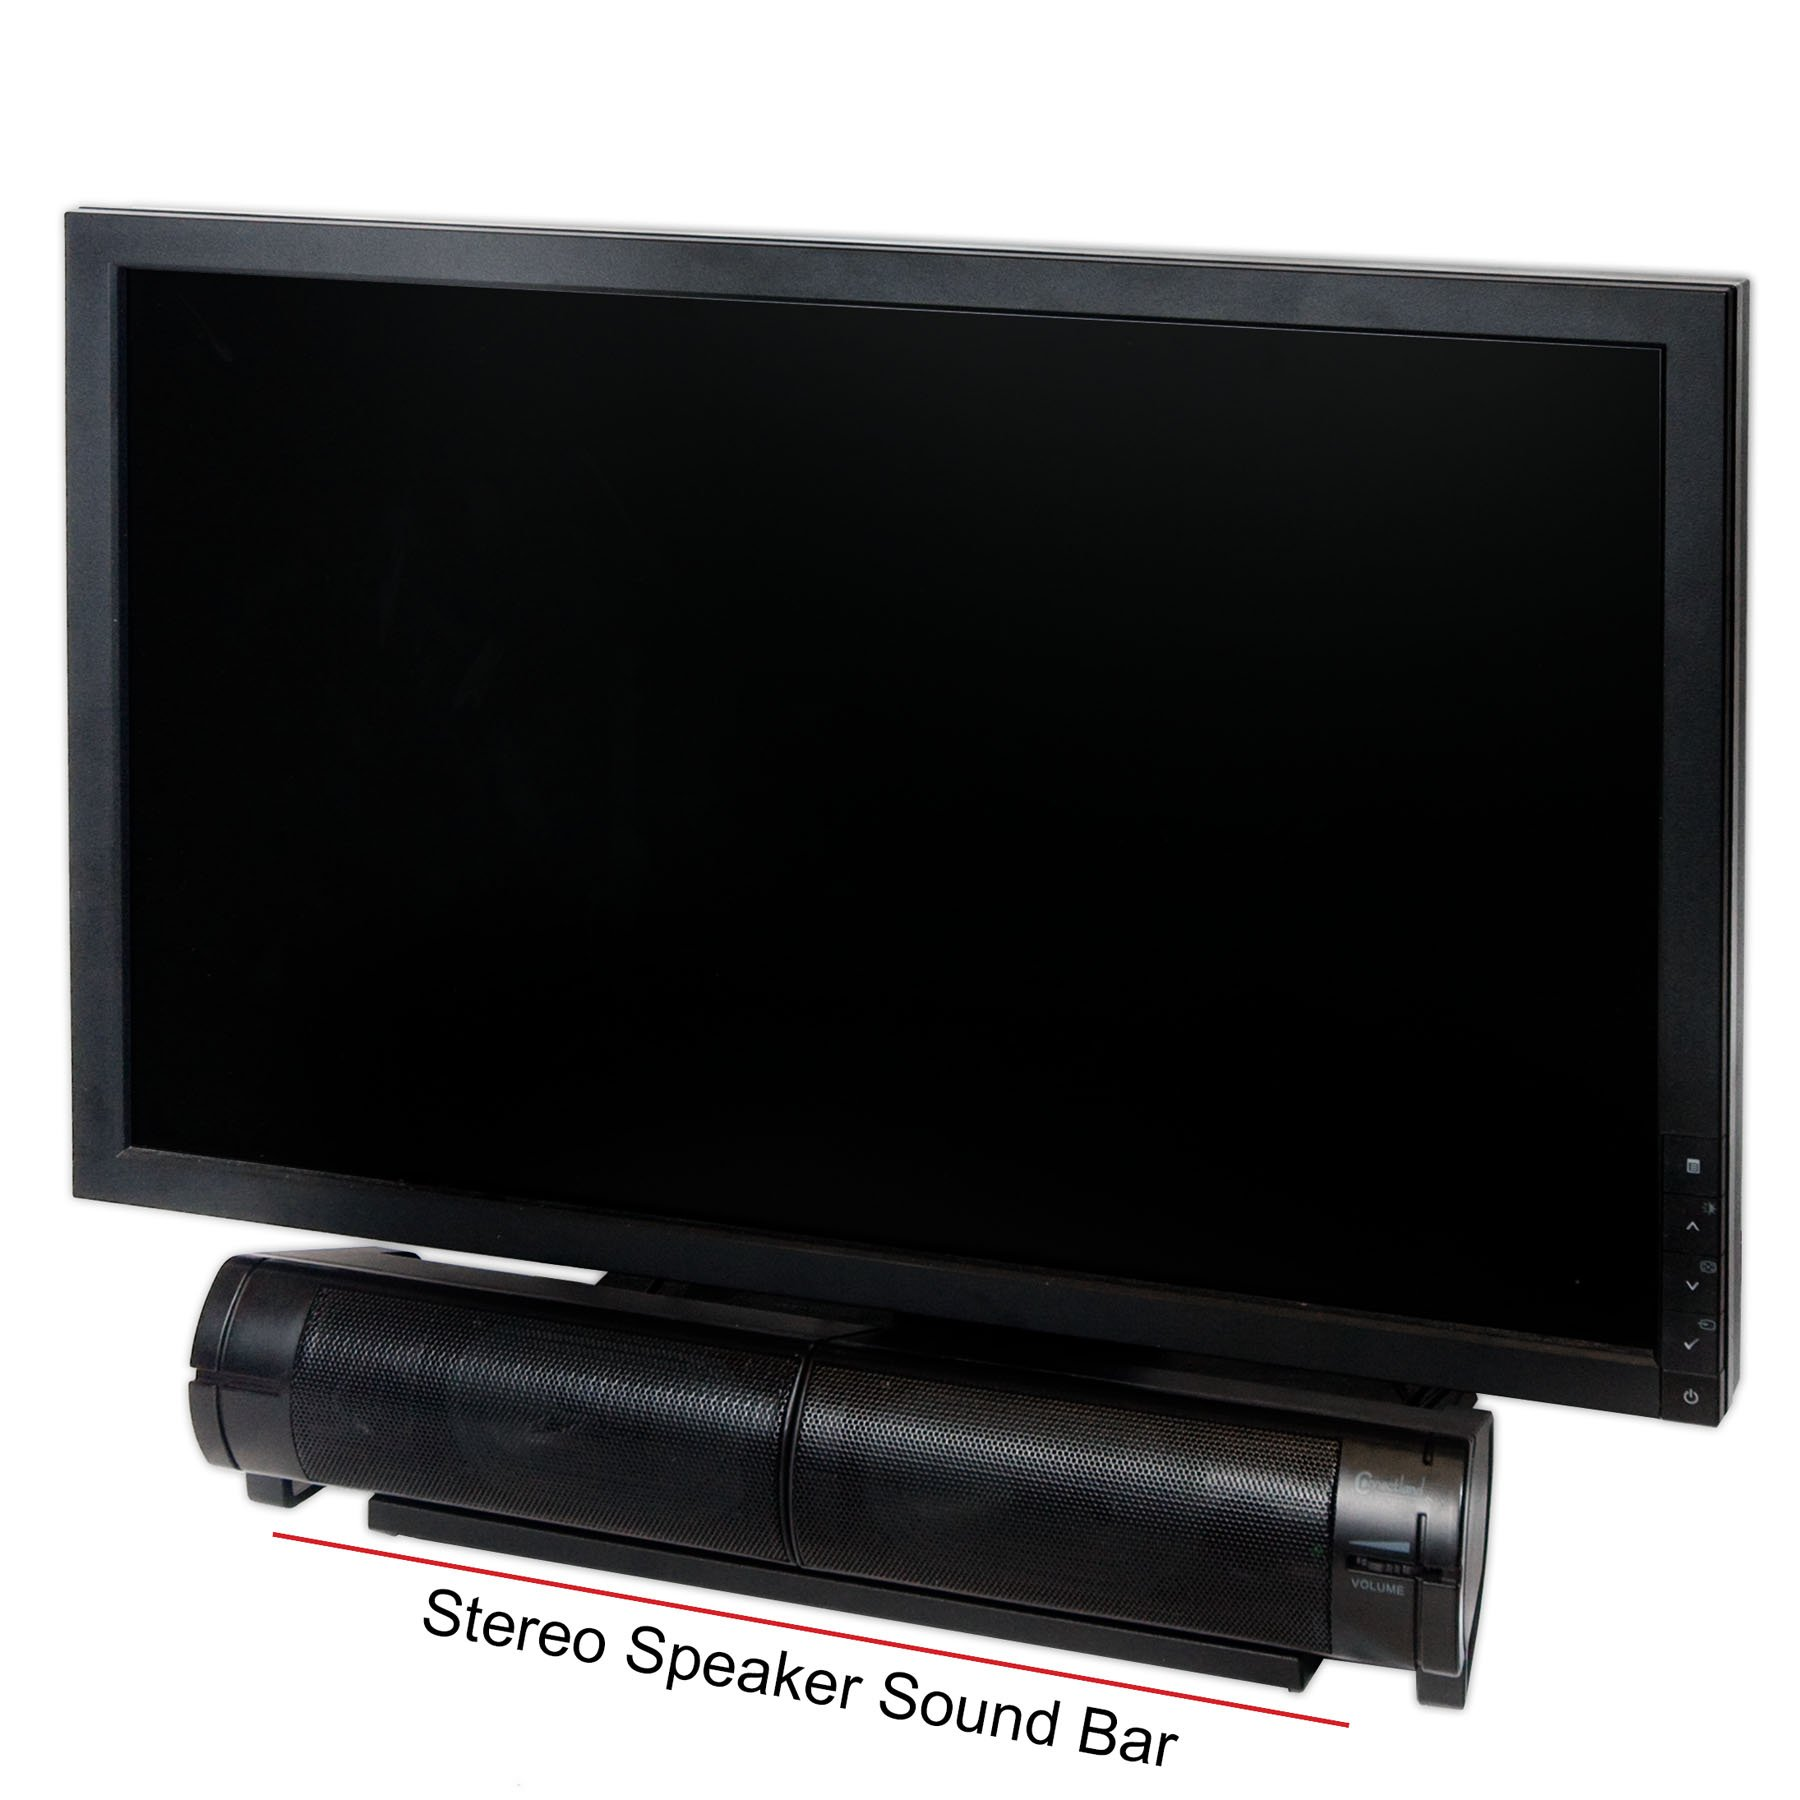 Connectland CL-SPK20037 USB Powered Desktop Monitor Stereo Speaker Sound Bar, Black by Syba (Image #2)